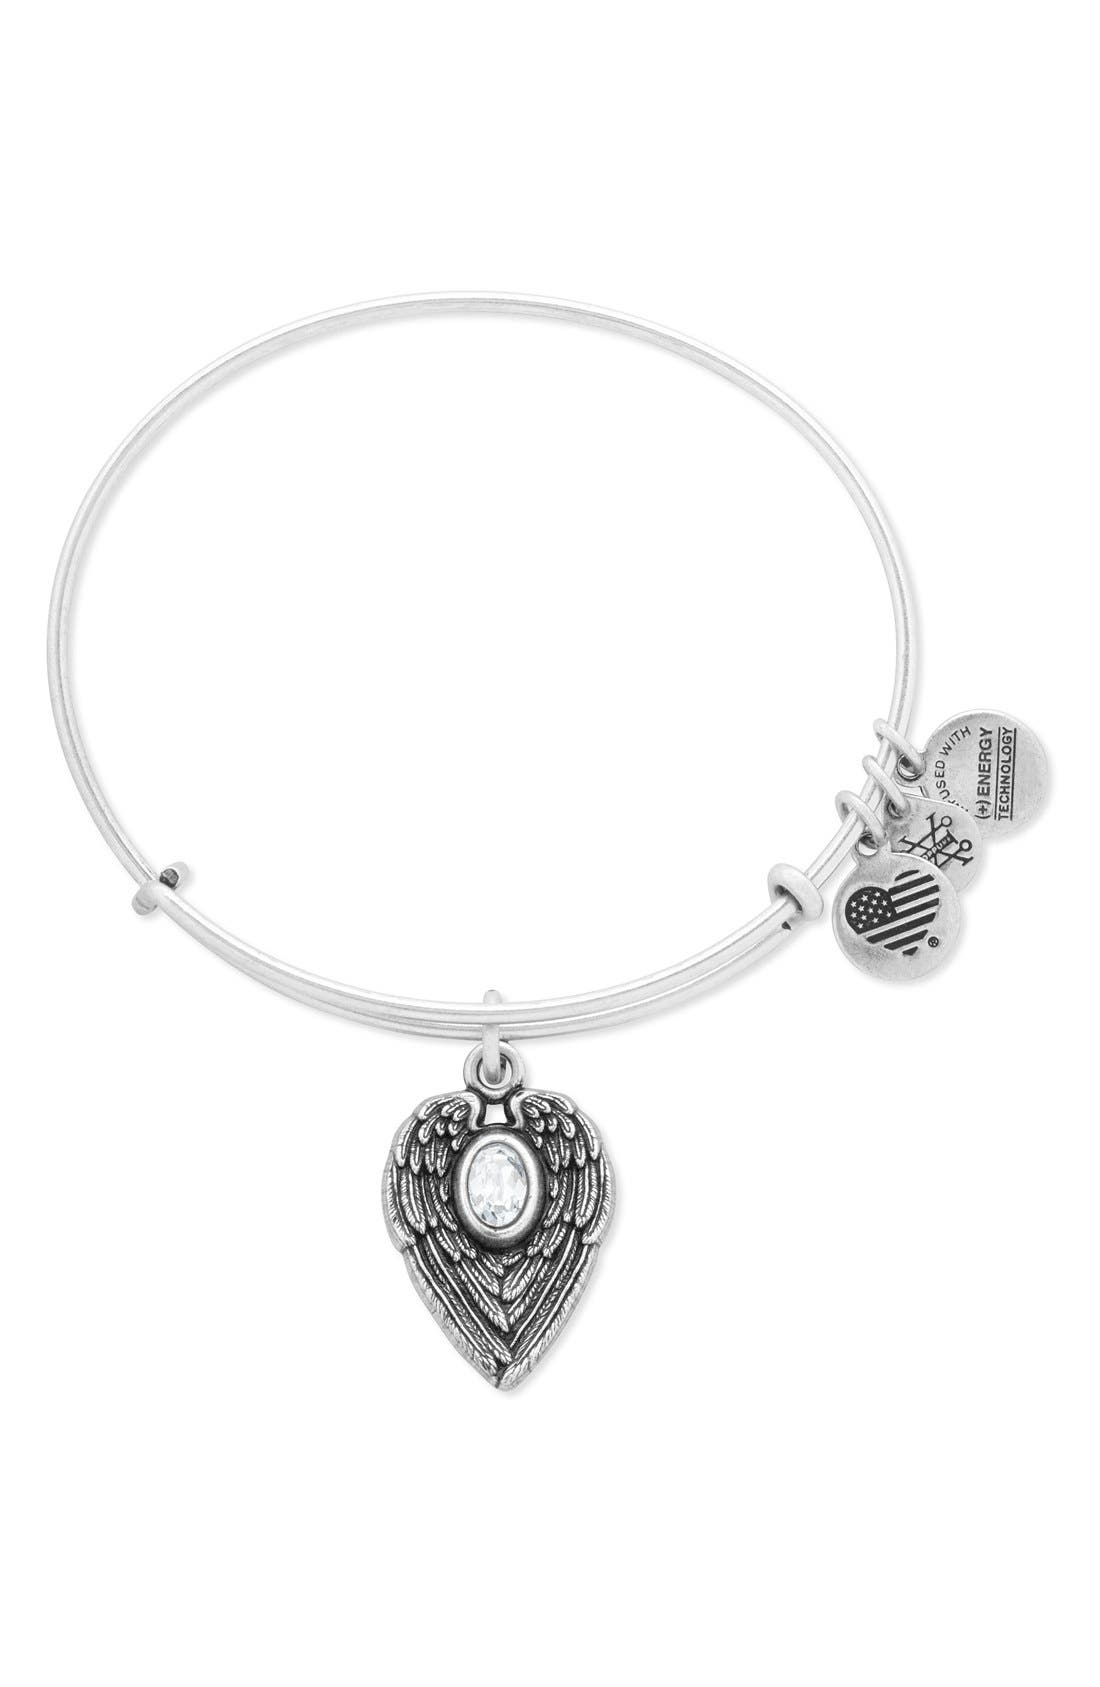 Alternate Image 1 Selected - Alex and Ani 'Guardian Angel' Adjustable Wire Bangle